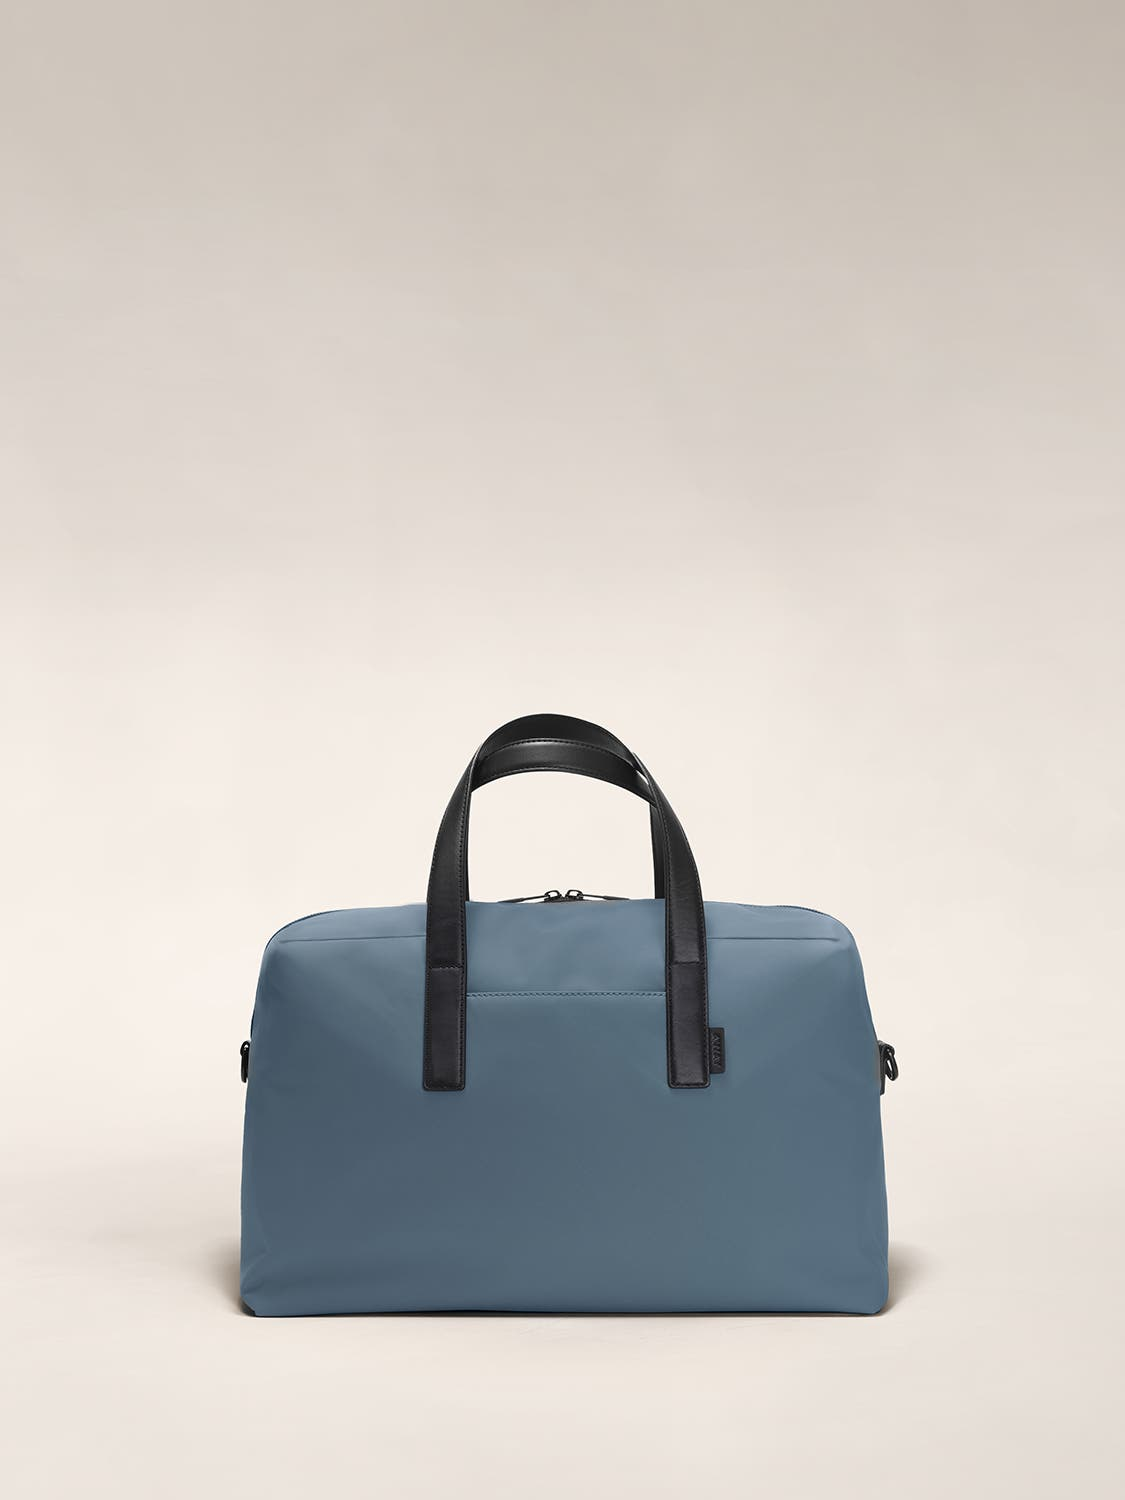 Front of a coast blue duffle bag with raised straps.